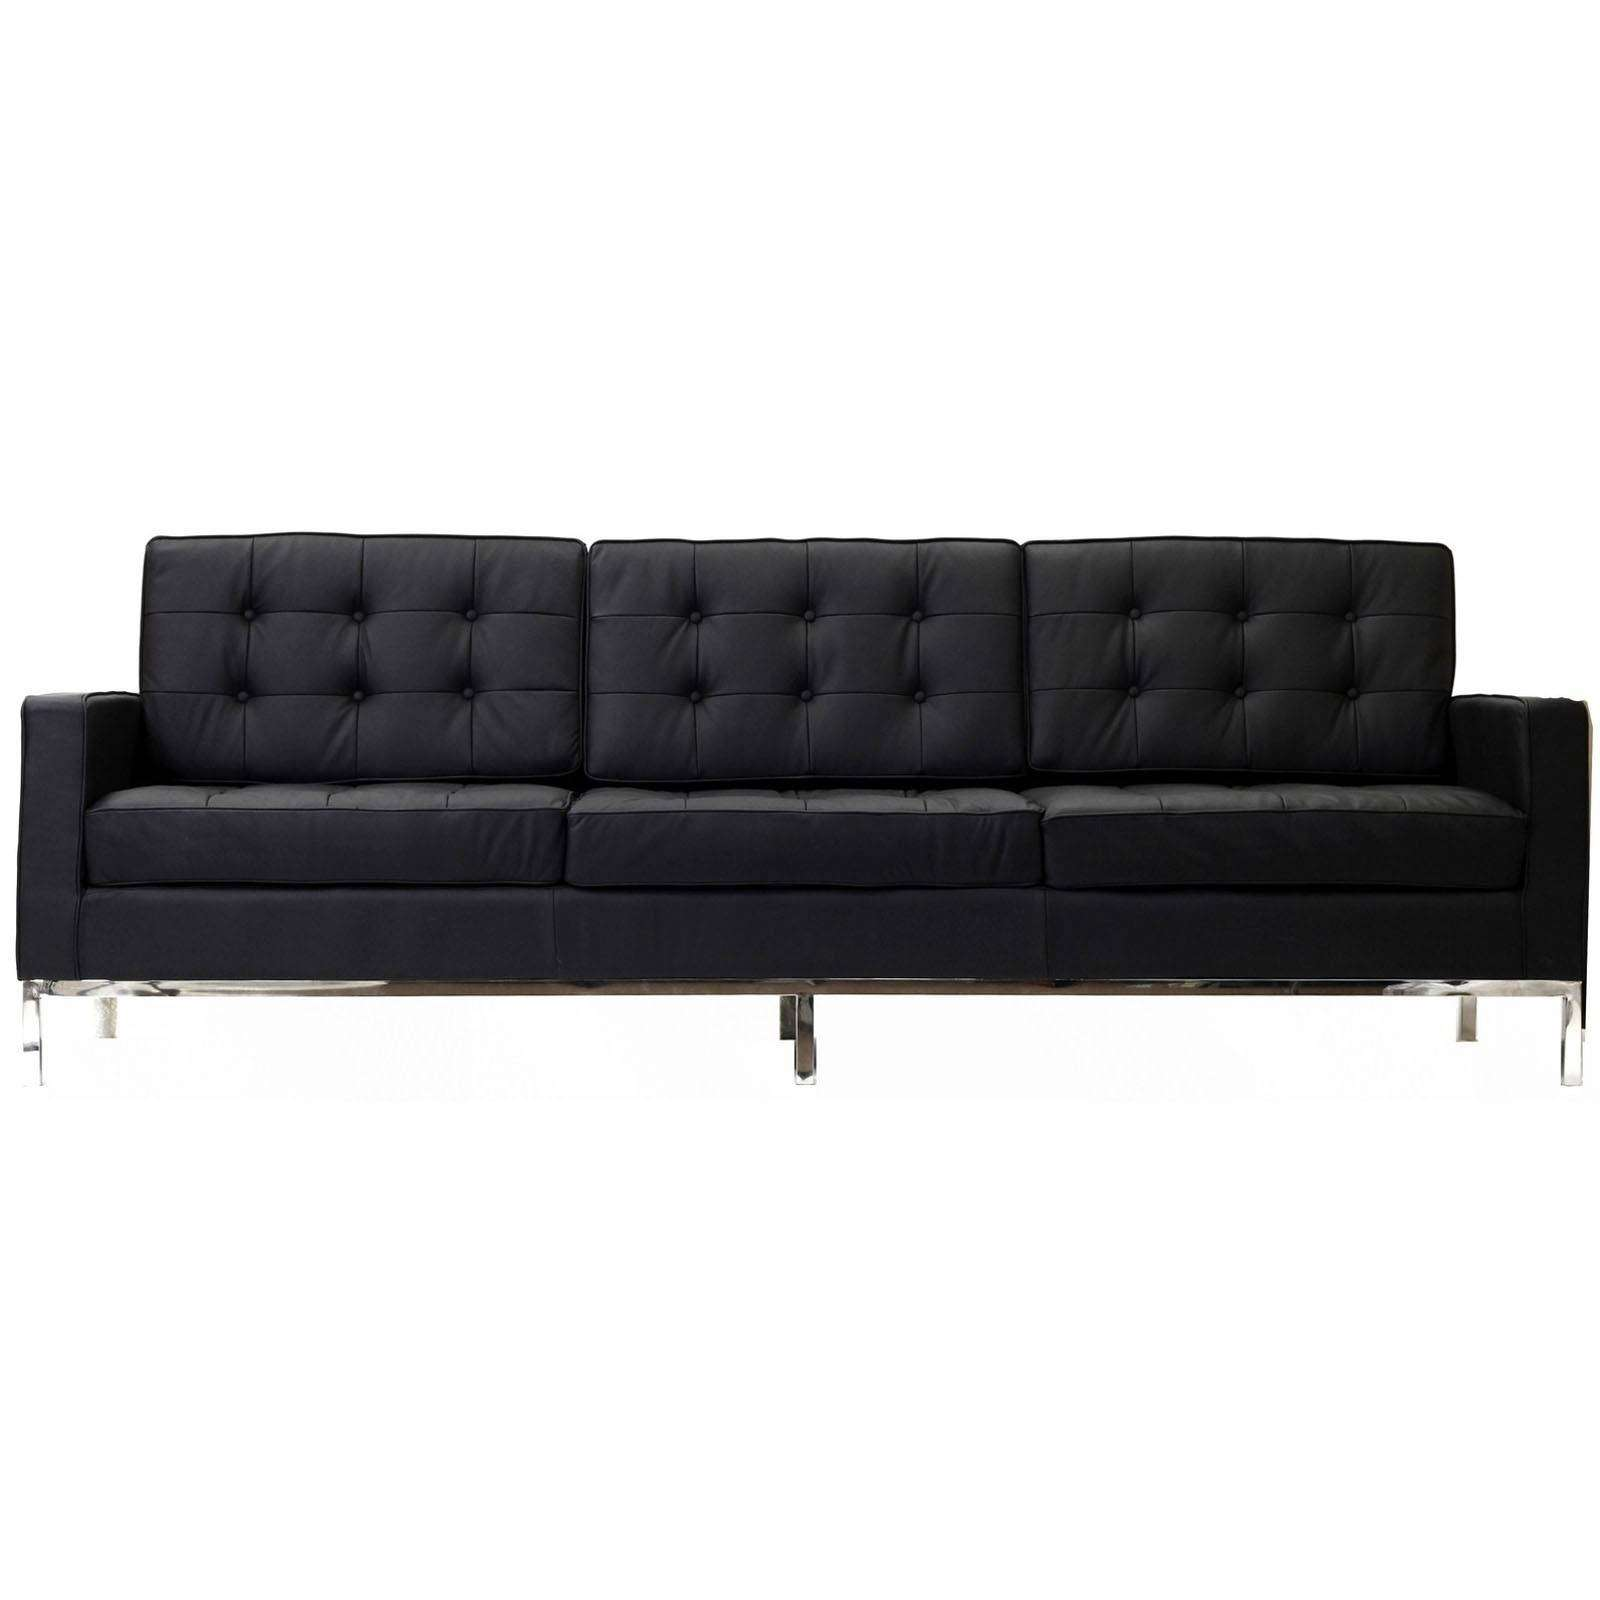 Florence knoll style sofa couch leather for Modern leather furniture